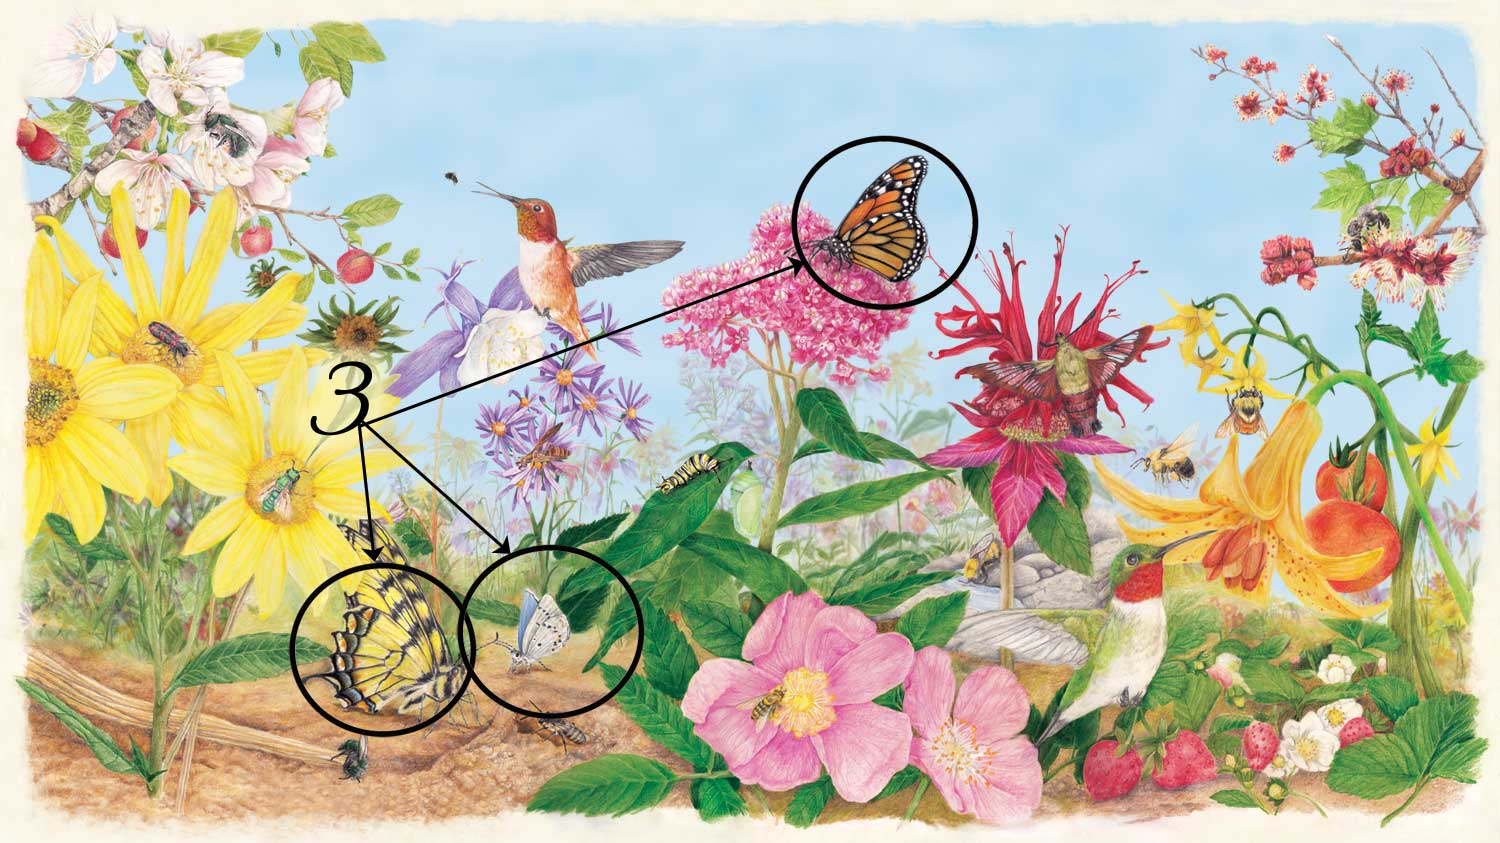 Pollinator poster with butterflies circled